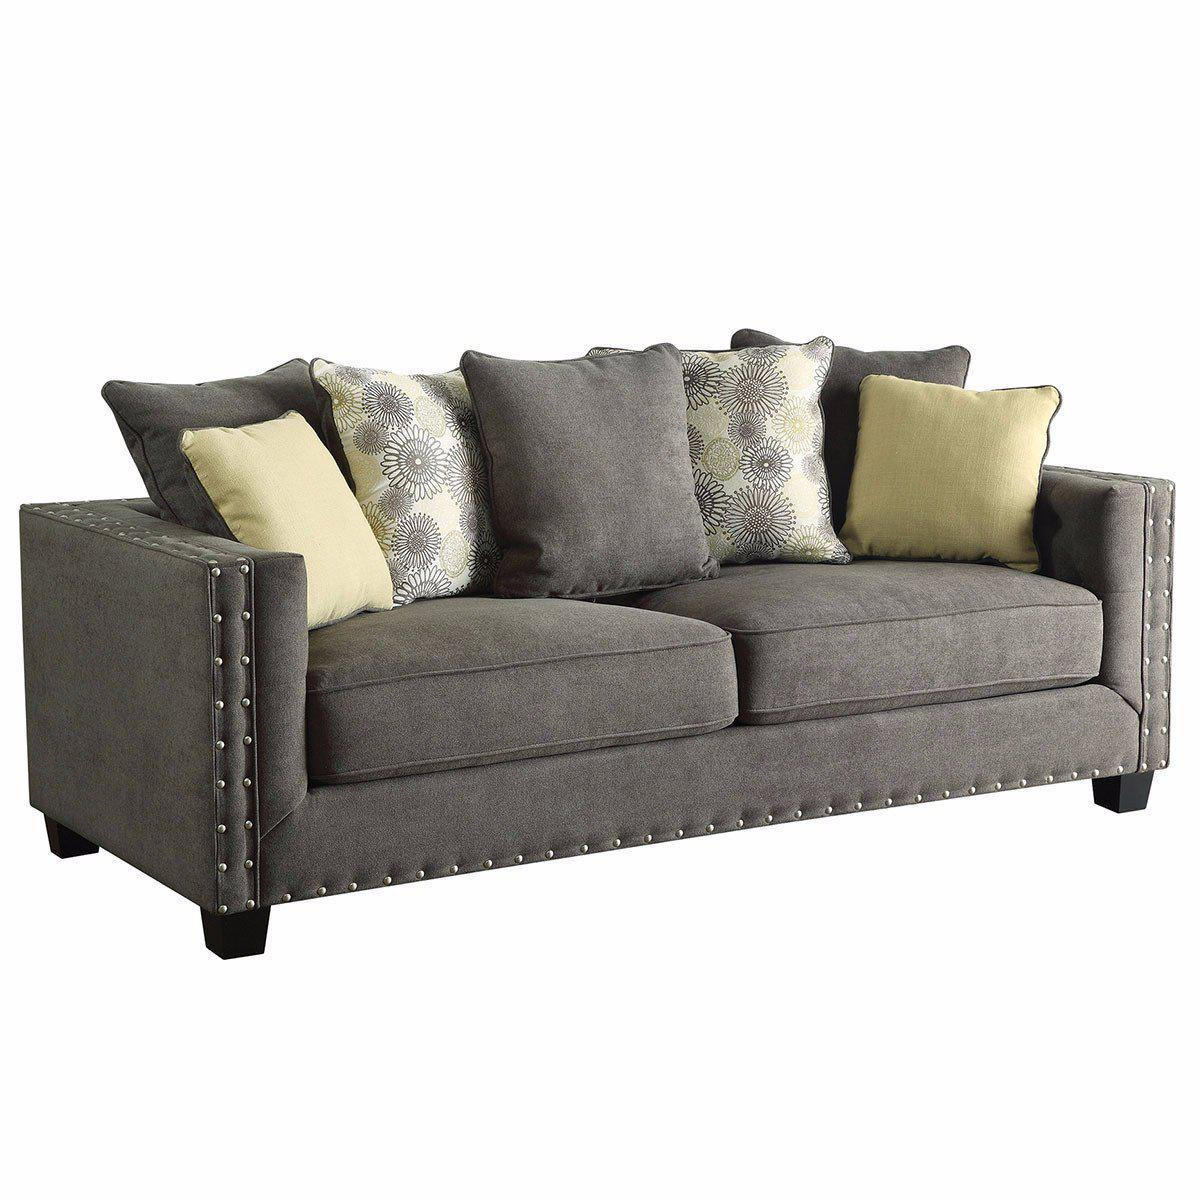 Kelvington Sofa-sofas-Jennifer Furniture